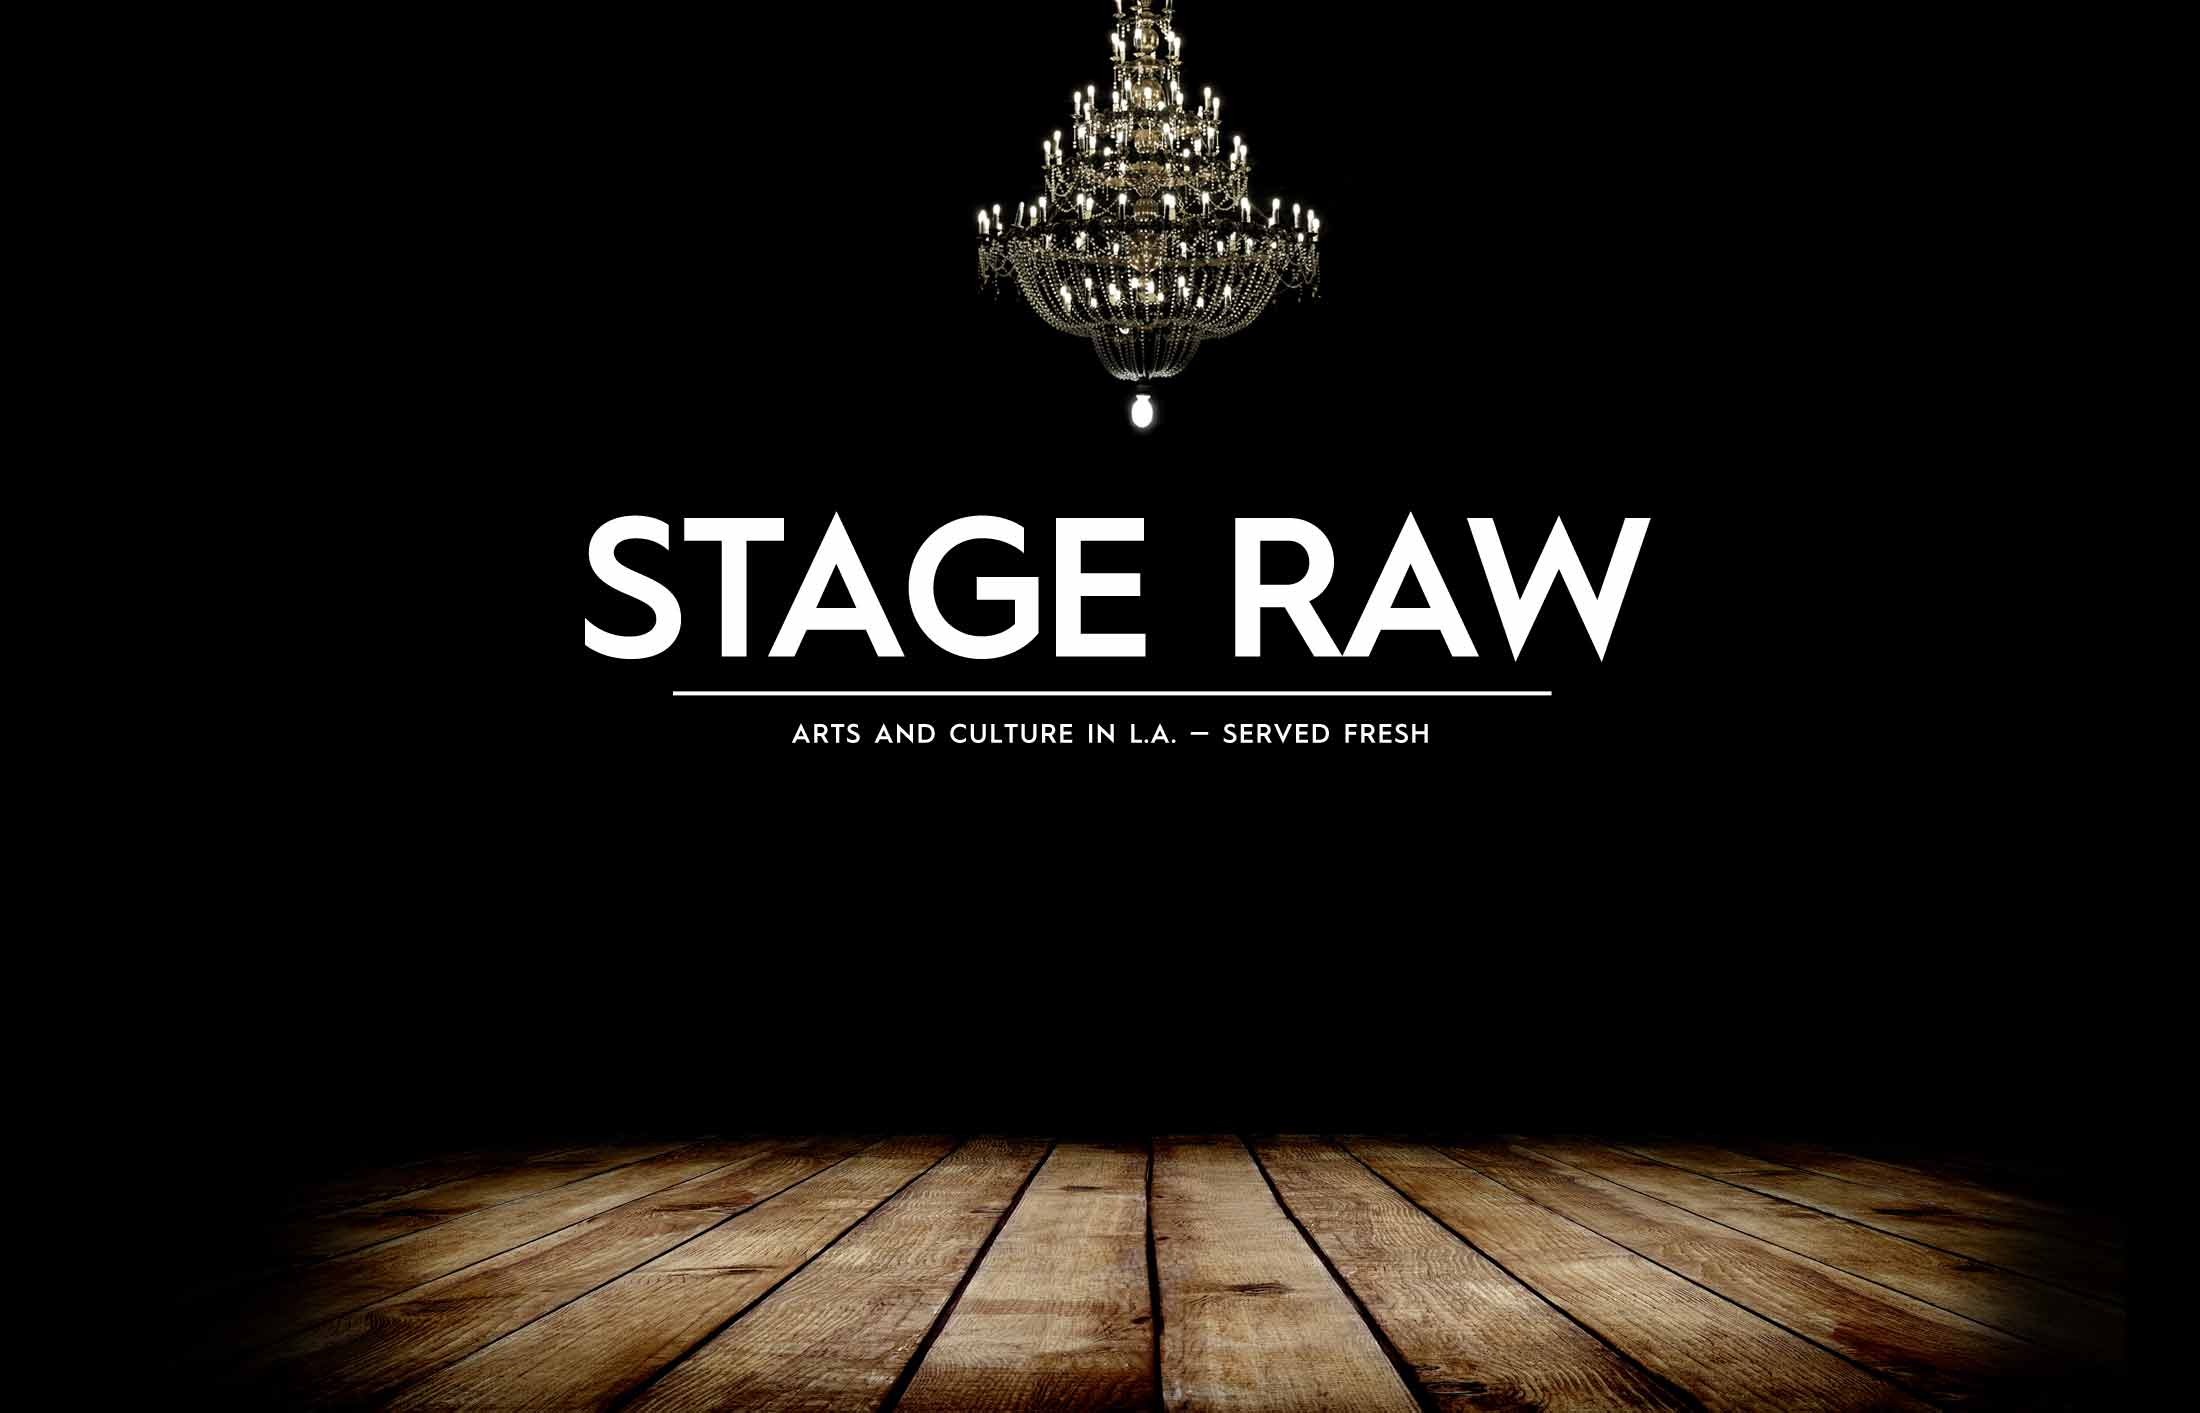 stage-raw-intro-new-theater.jpg